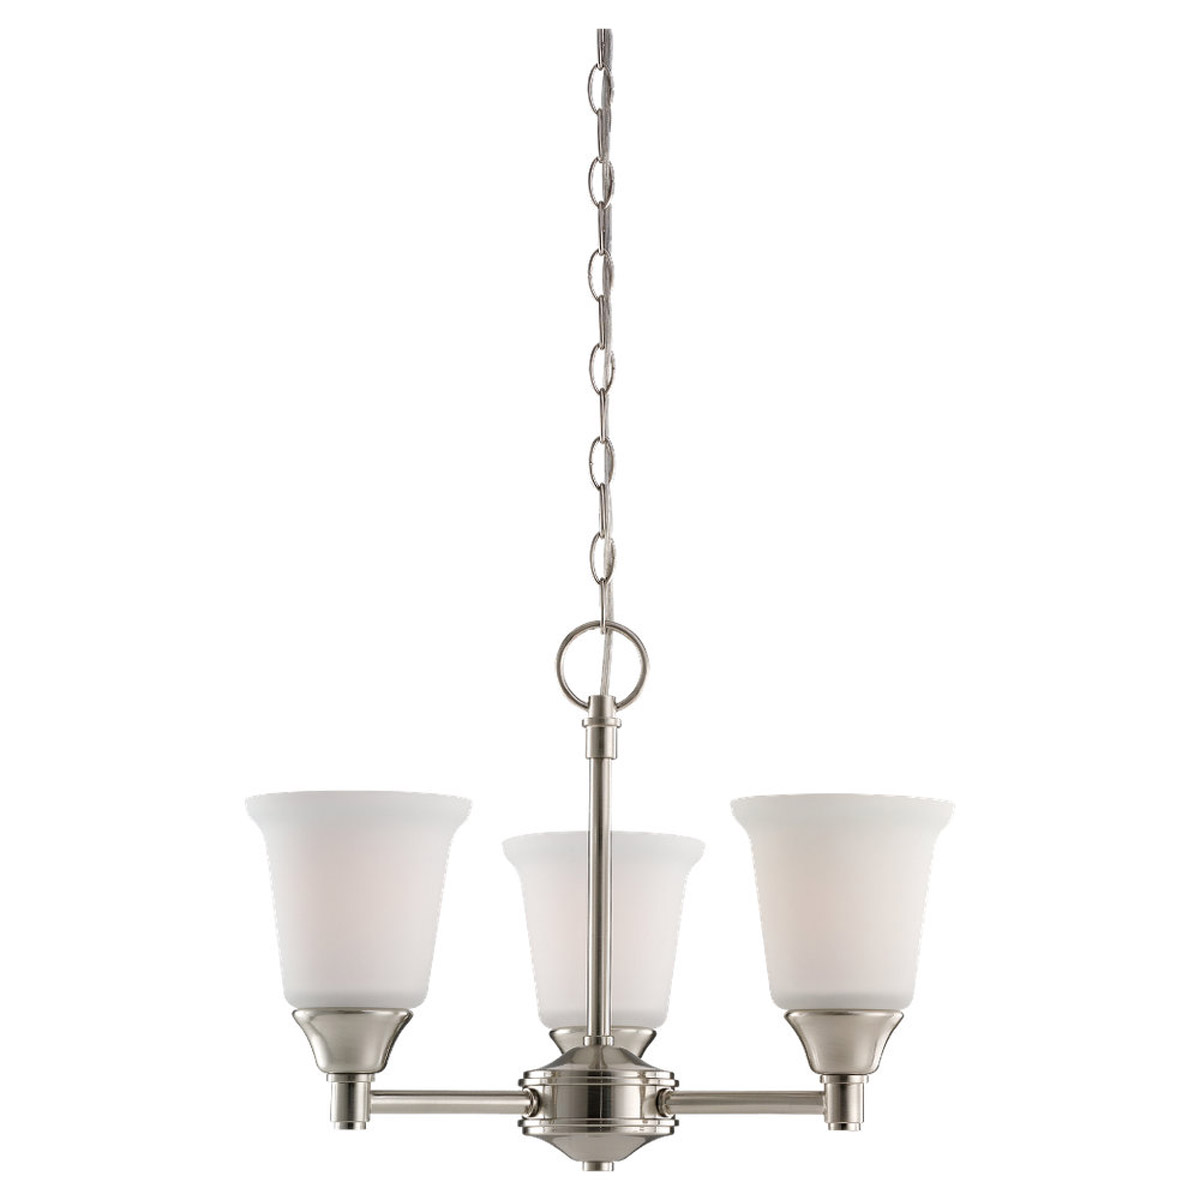 Sea Gull Lighting Belair 3 Light Fluorescent Chandelier in Brushed Nickel 31790BLE-962